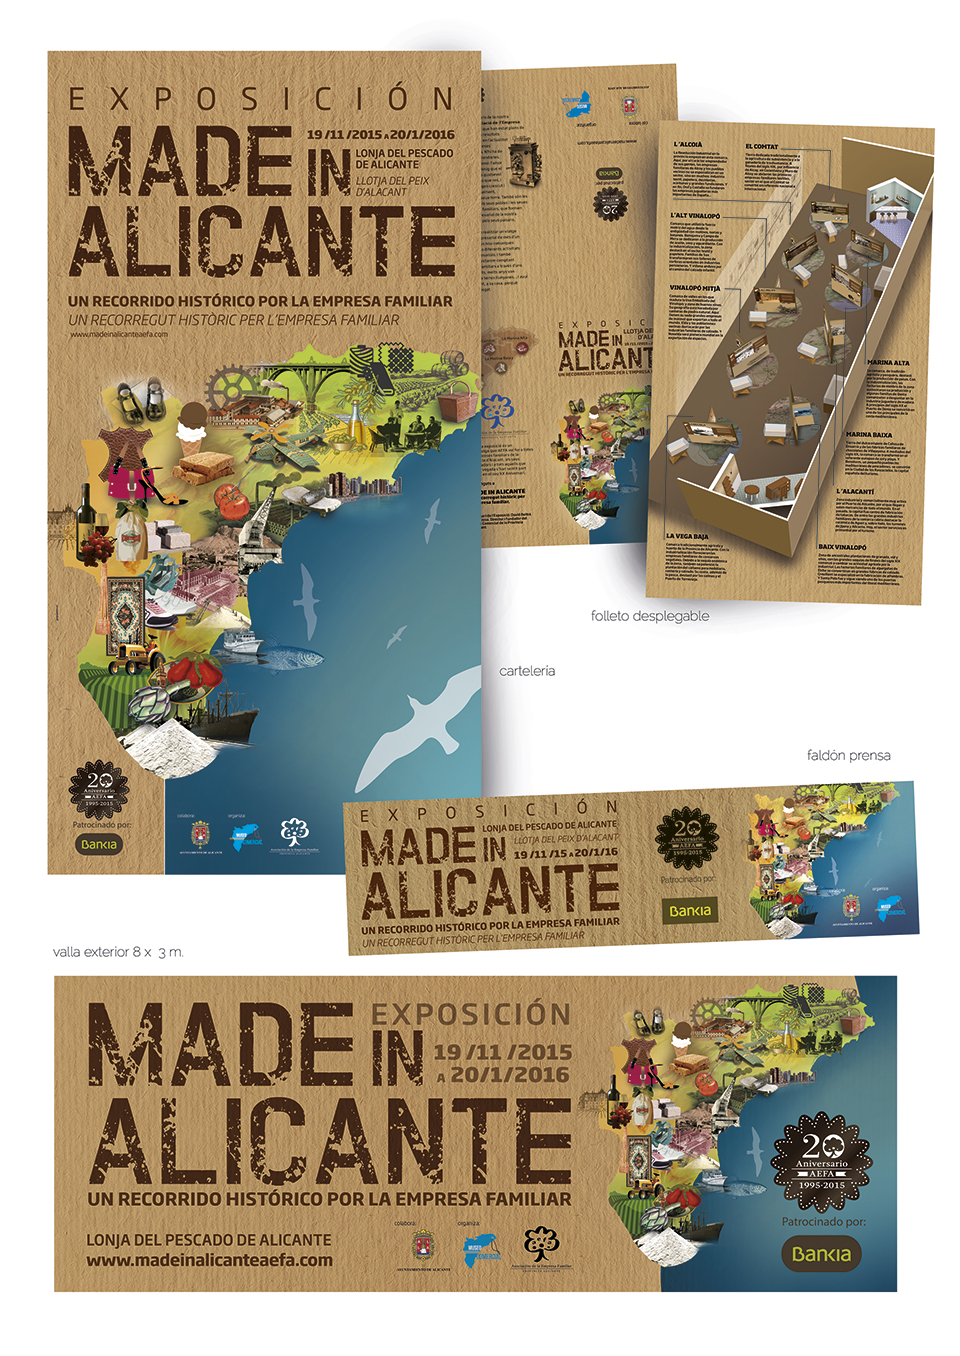 Made in Alicante